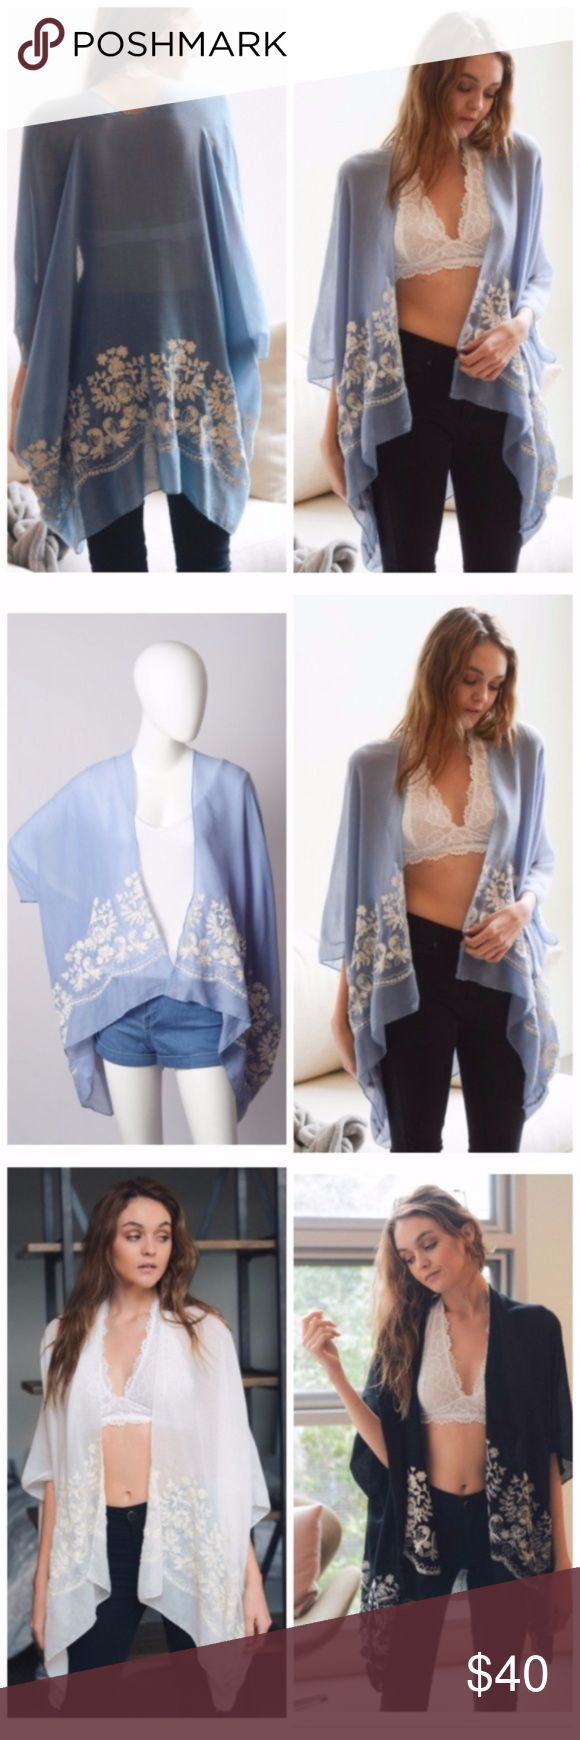 "2 LEFT!! Blue Floral Embroidered Kimono •Beautiful Soft Blue Floral Embroidered Kimono •One Size Fits Most 43"" x 28"" •65% Polyester 35% Viscose •Perfect Holiday Gift Idea Loudheart Accessories Scarves & Wraps"